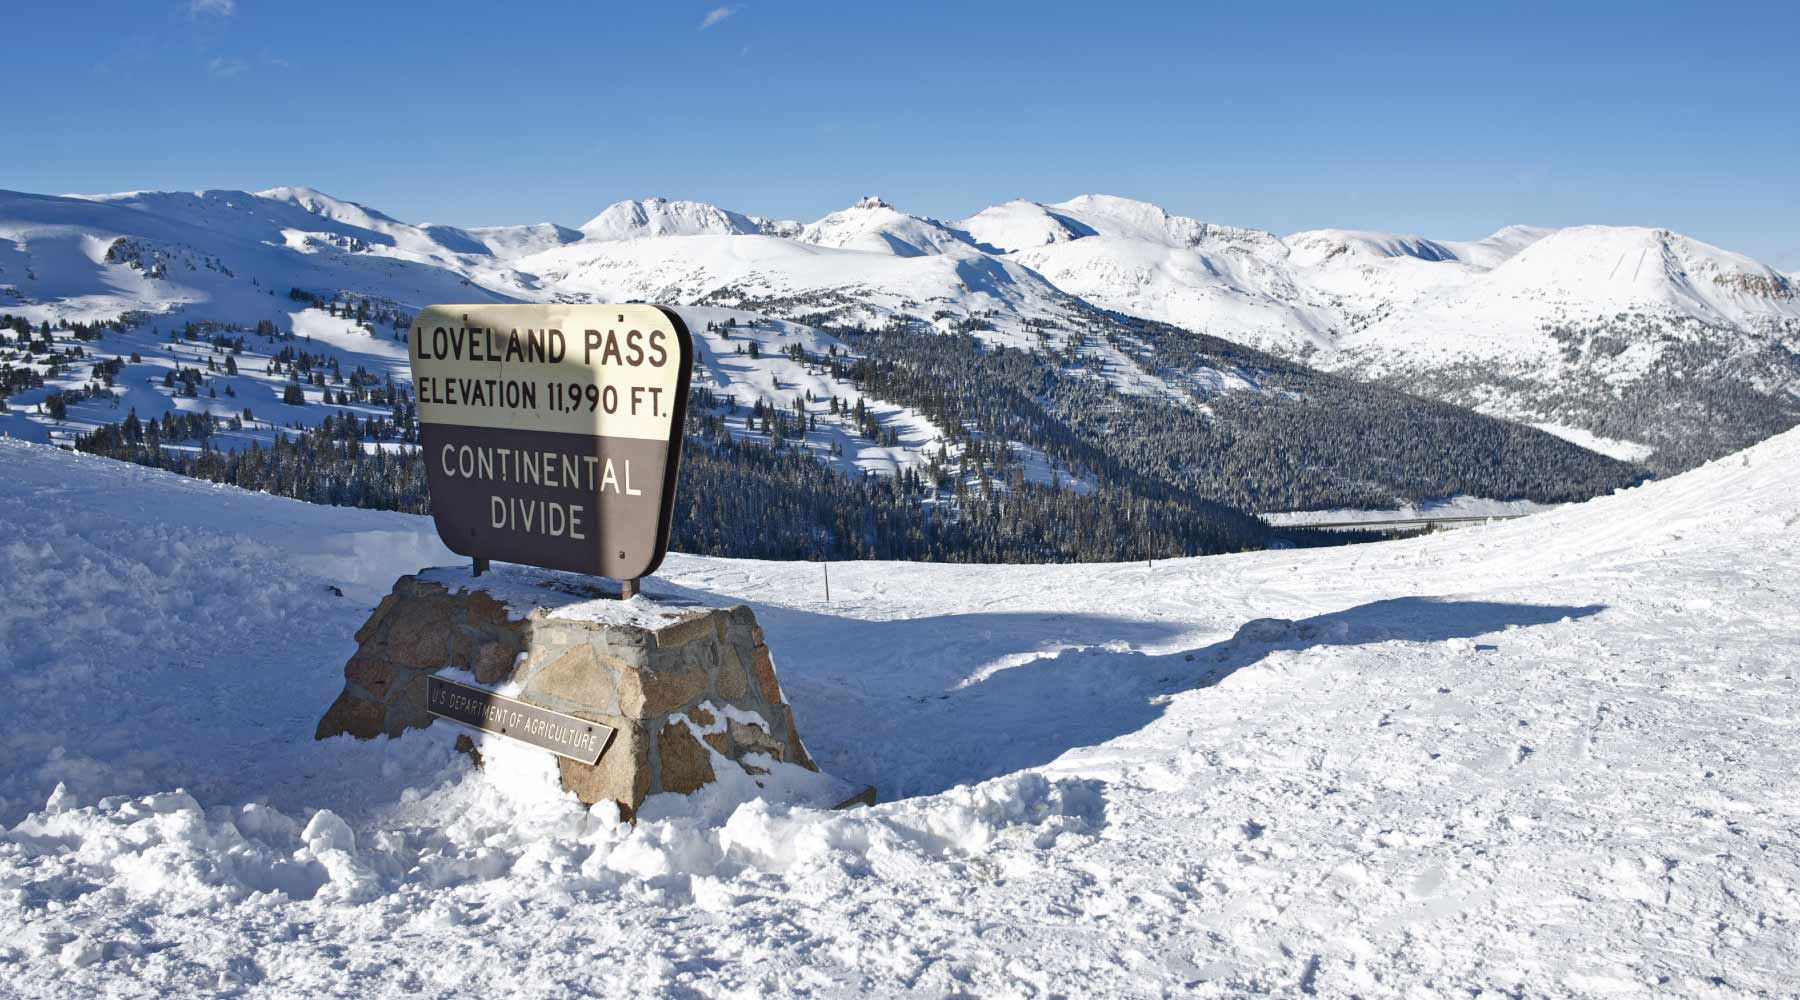 Top 5 Lesser-Known Ski Resorts Near Denver